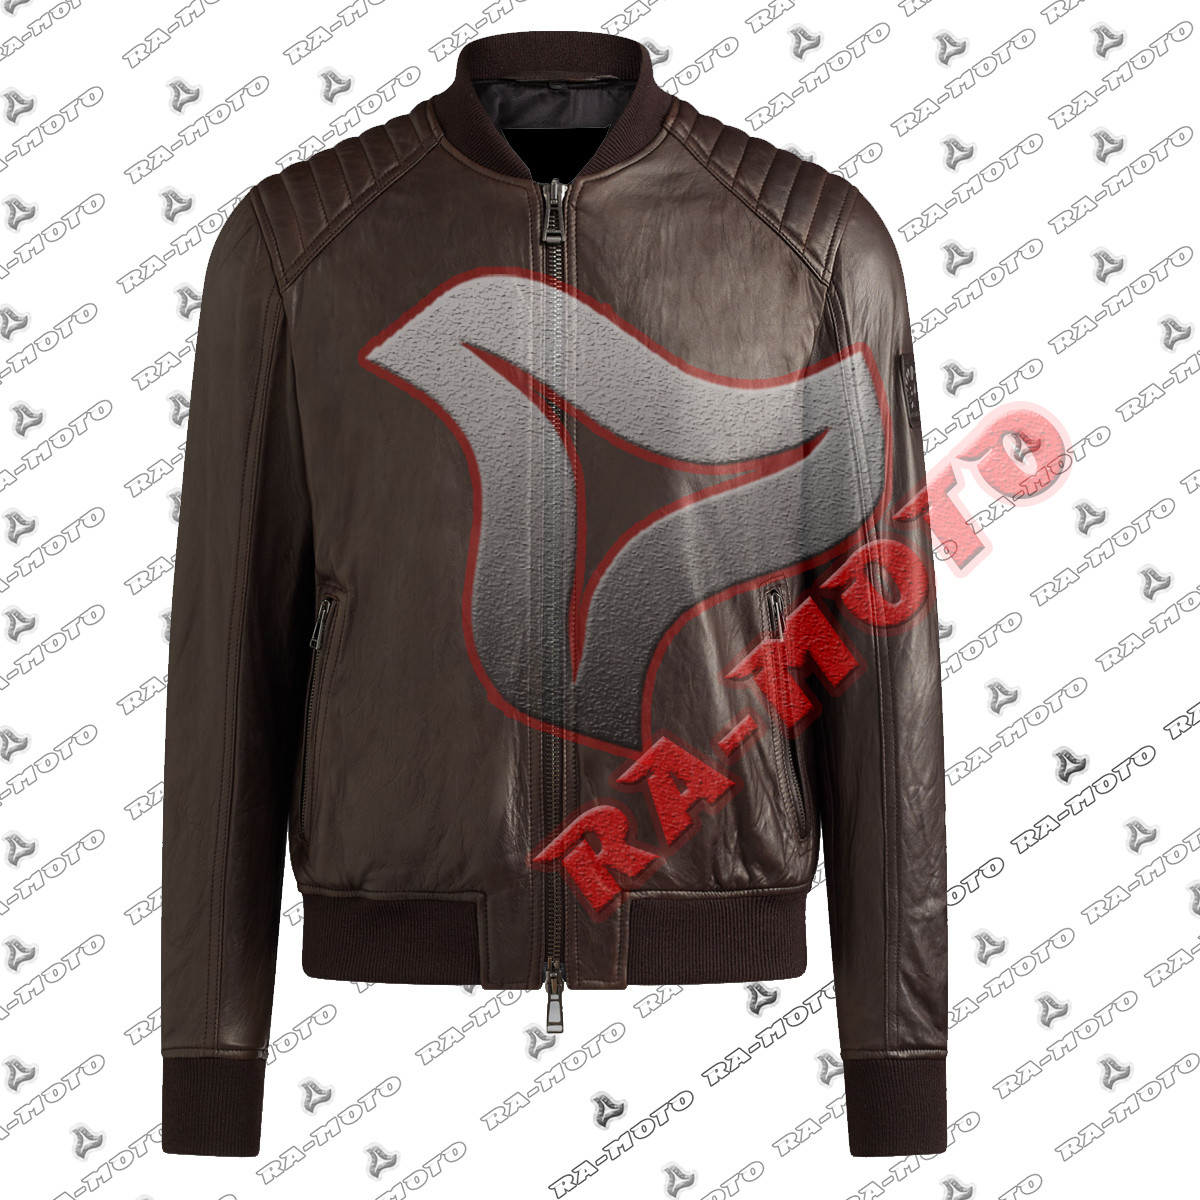 454fd70ea RA- 200543 SIDMOUT RECTORY RED\PERSHALL BOMBER JACKET